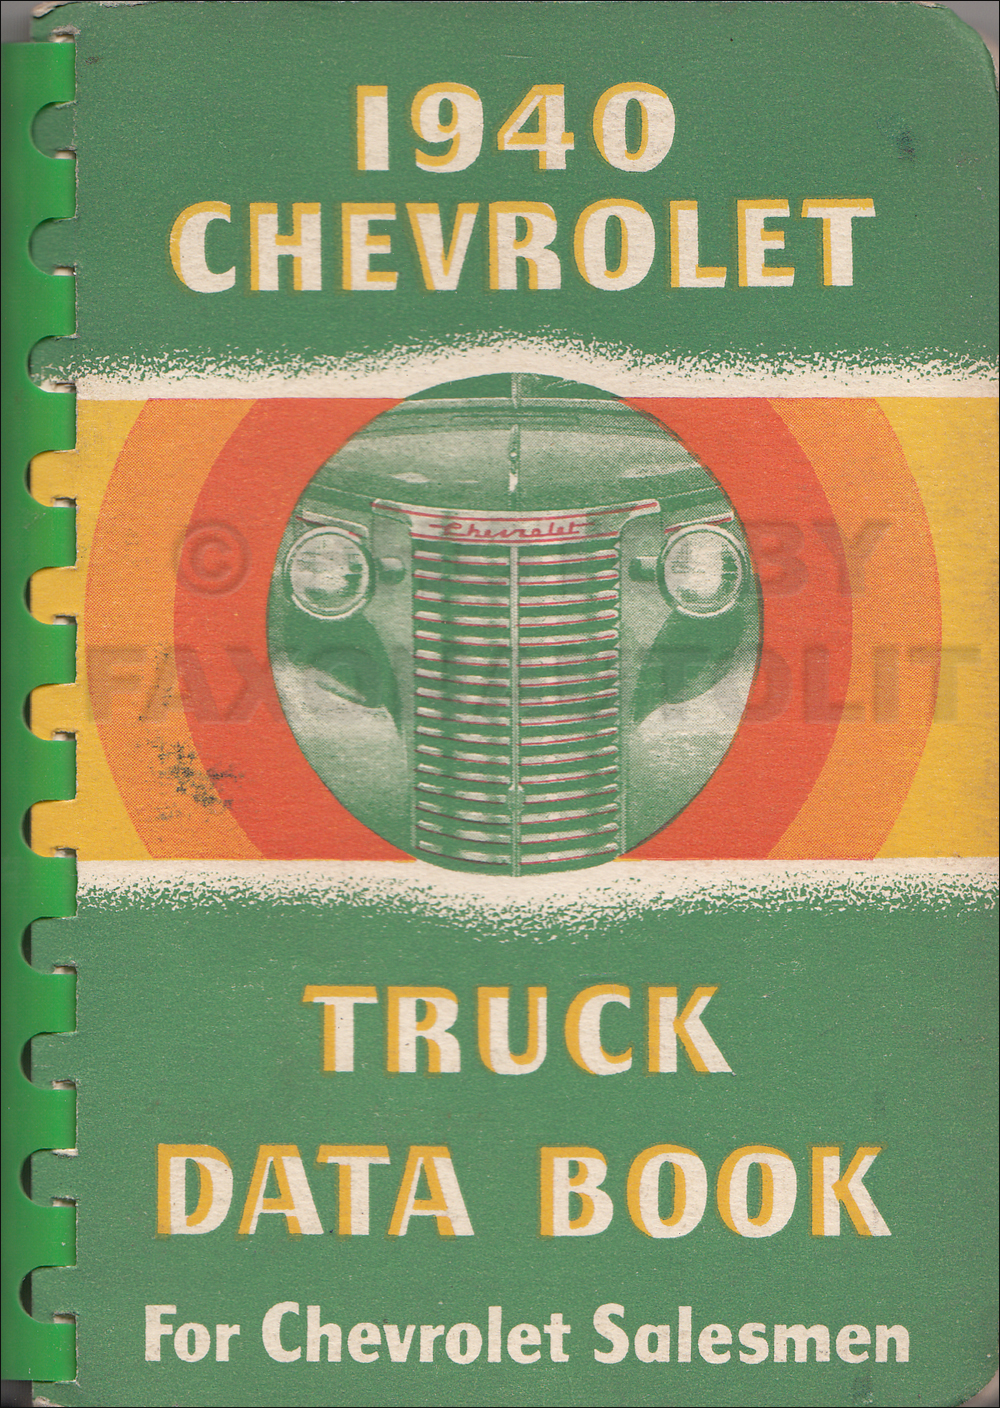 1940 Chevrolet Truck Data Book Original